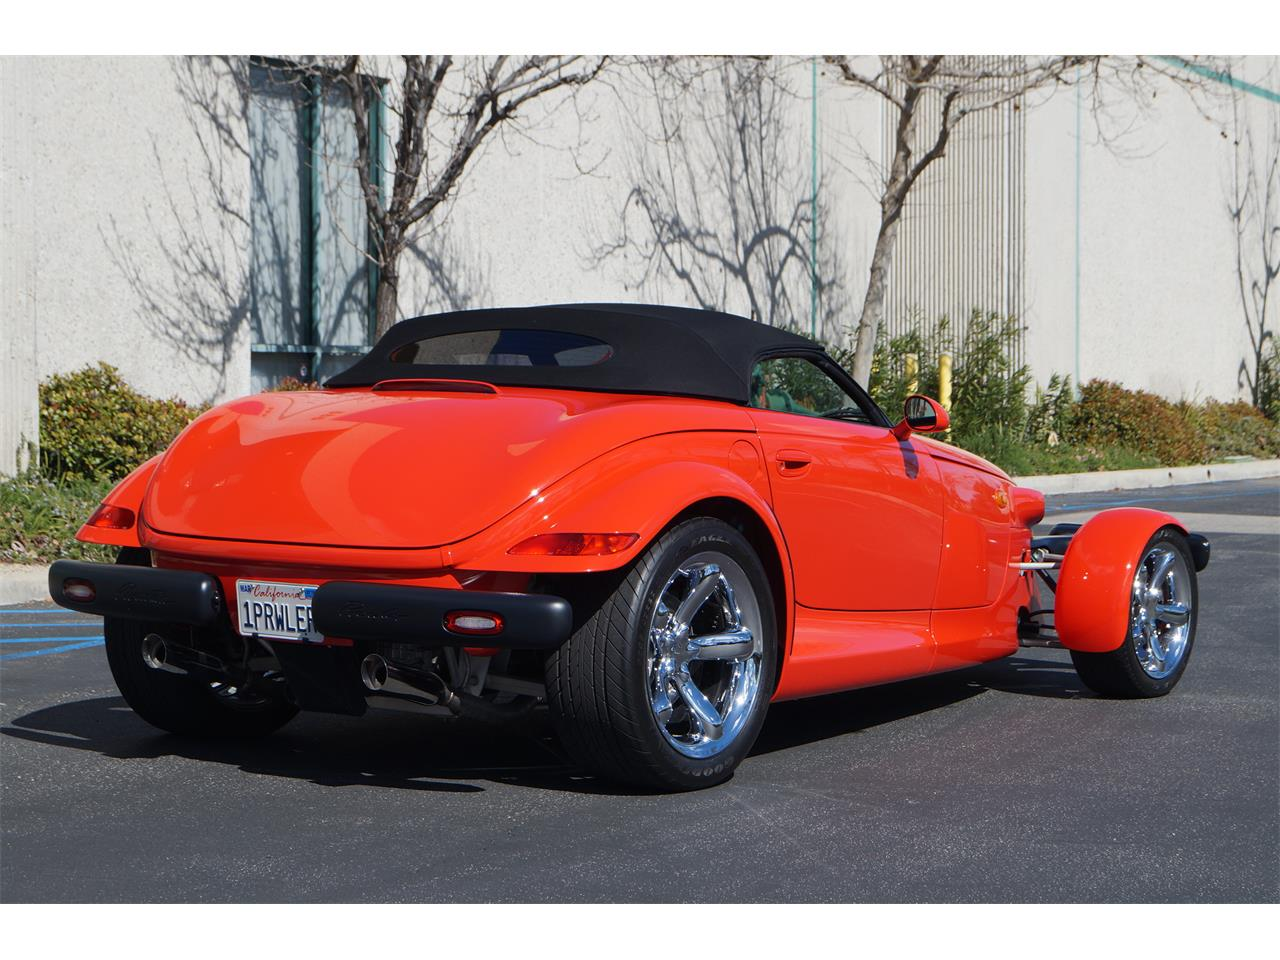 2000 Plymouth Prowler for sale in Thousand Oaks, CA – photo 40